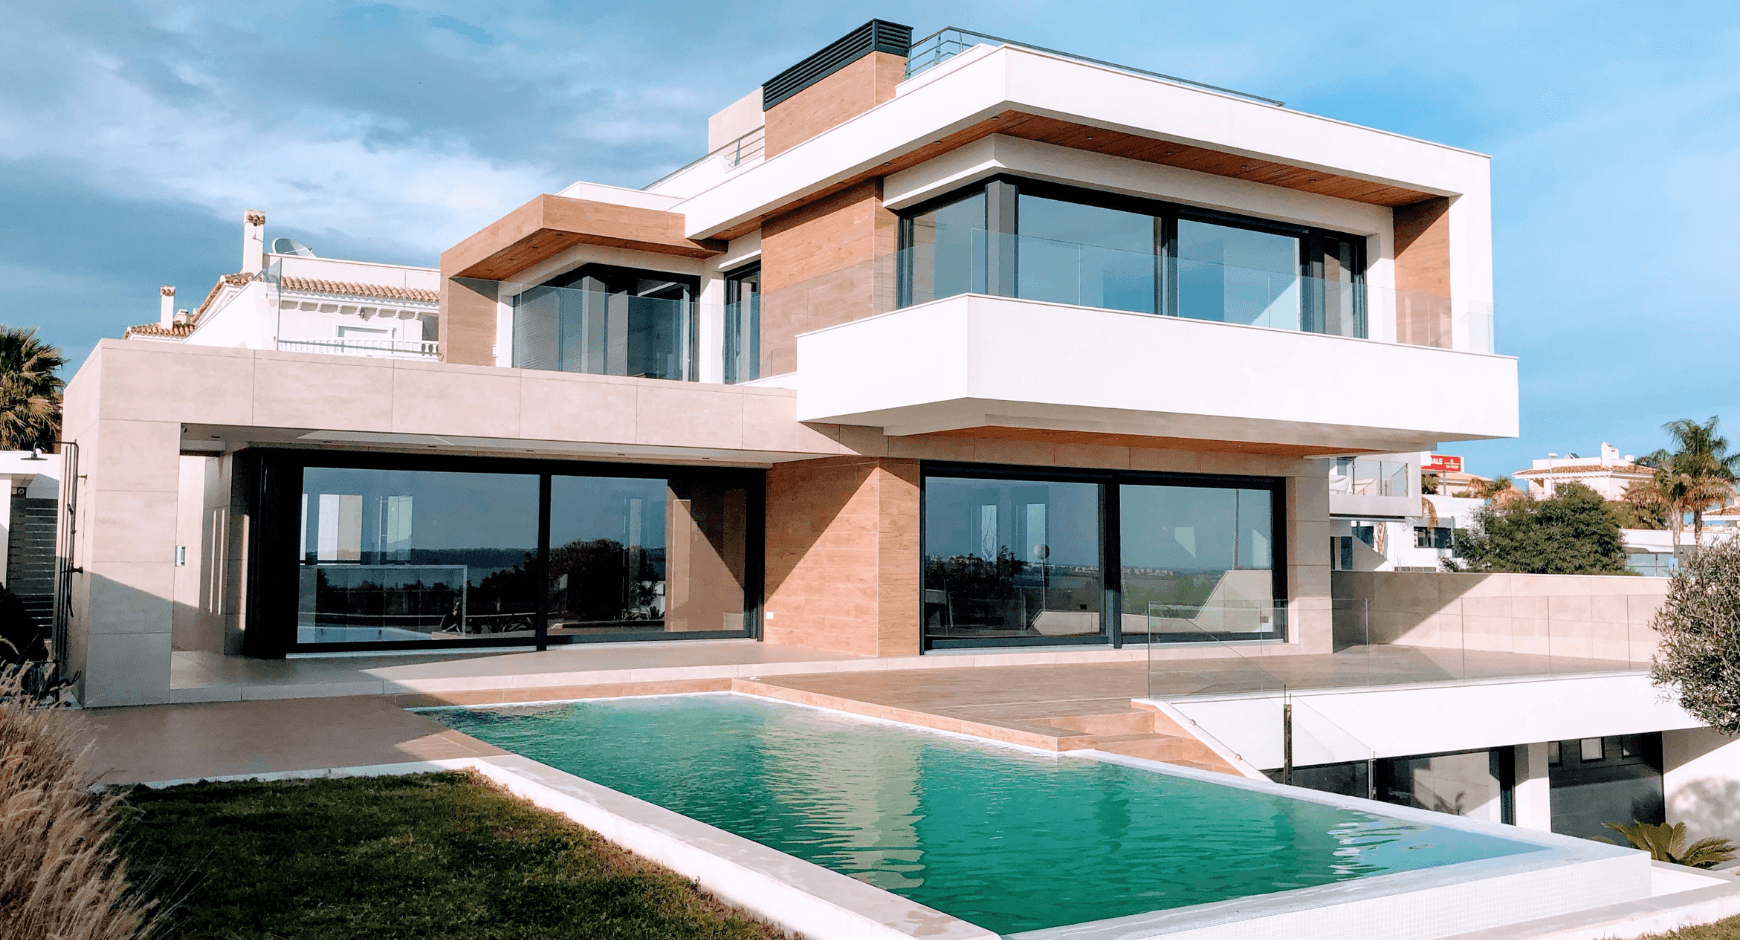 Image of a home with modern windows and trim